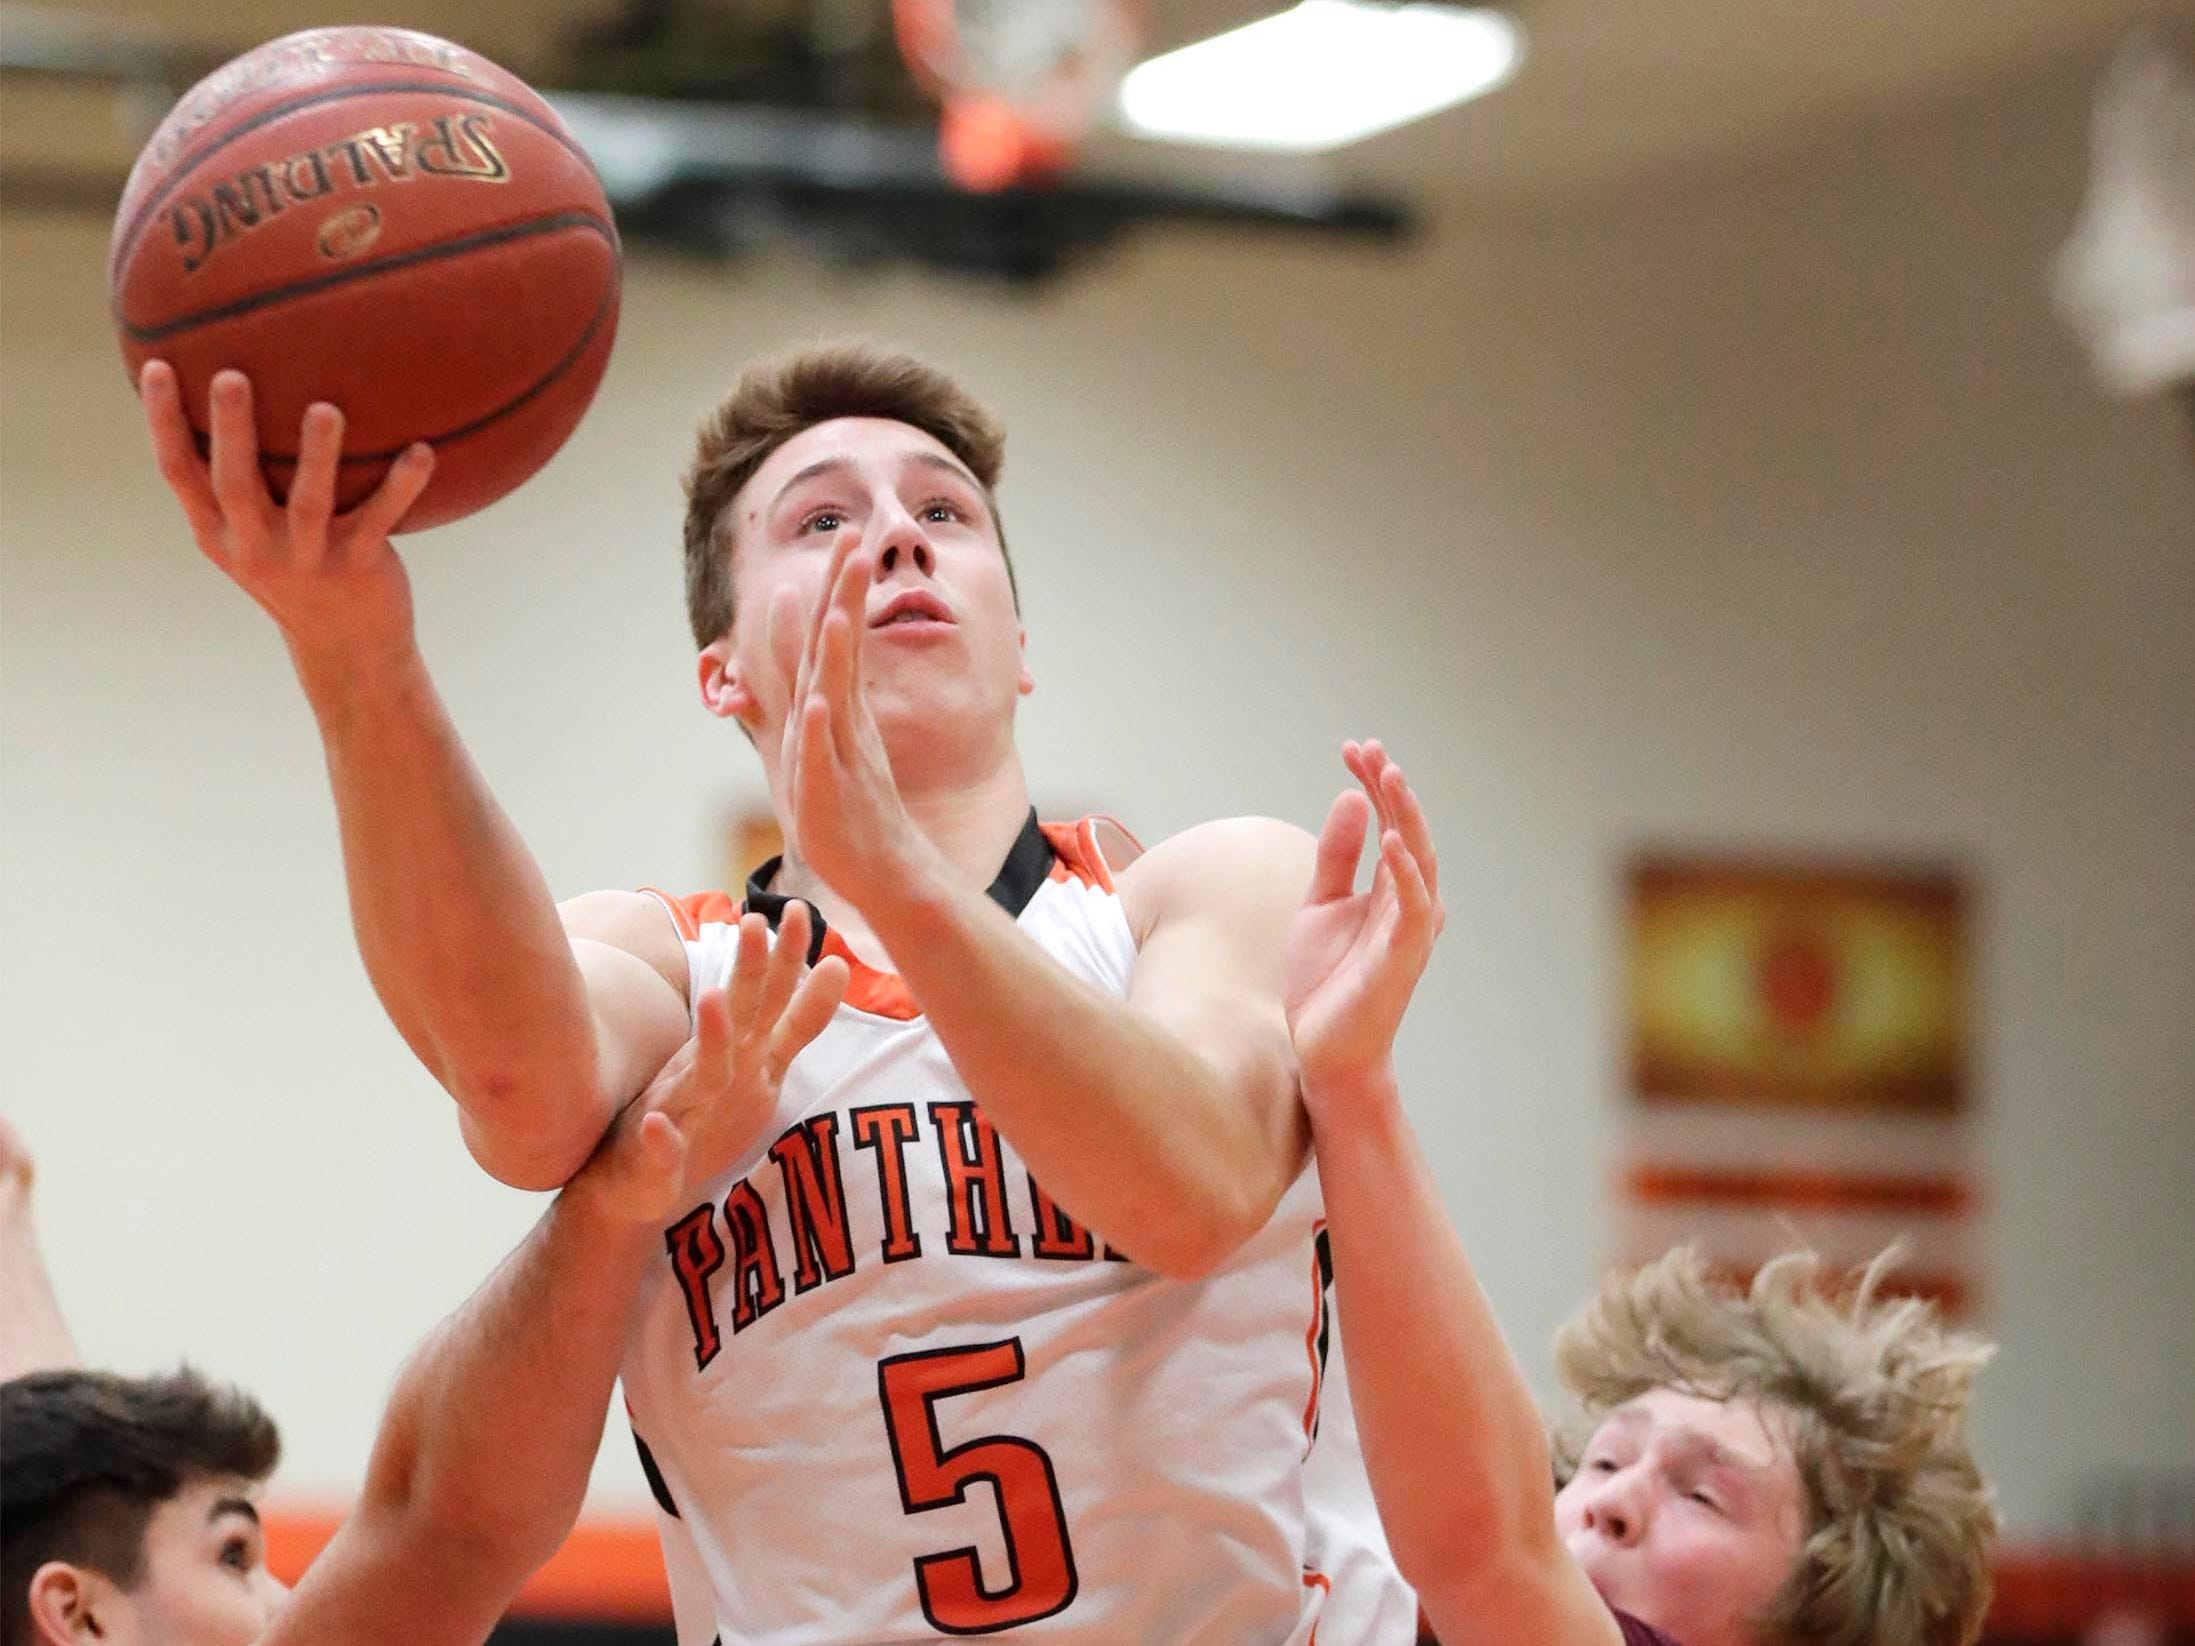 Plymouth's Sam Shutter (5) launches the ball against Winneconne, Wednesday, February 21, 2019, in Plymouth, Wis.